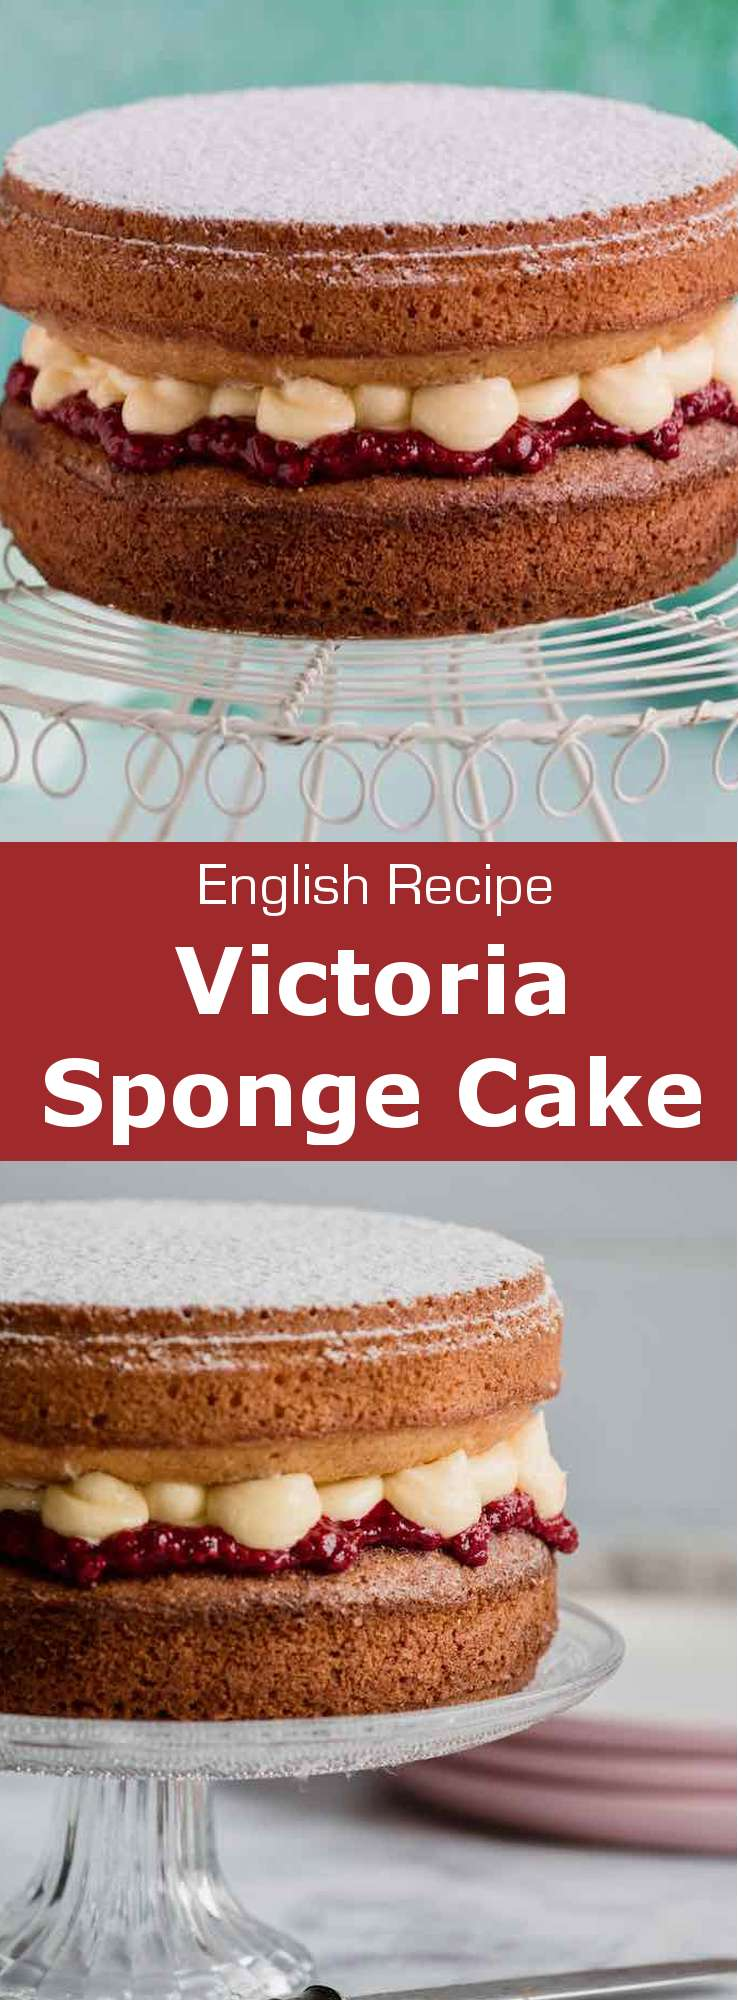 The Victoria sponge cake is a traditional English cake consisting of raspberry jam and vanilla buttercream, that is spread between two layers of sponge cake. #UnitedKingdom #EnglishCuisine #BritishCuisine #EnglishFood #BritishFood #EnglishRecipe #BritishRecipe #WorldCuisine #196flavors